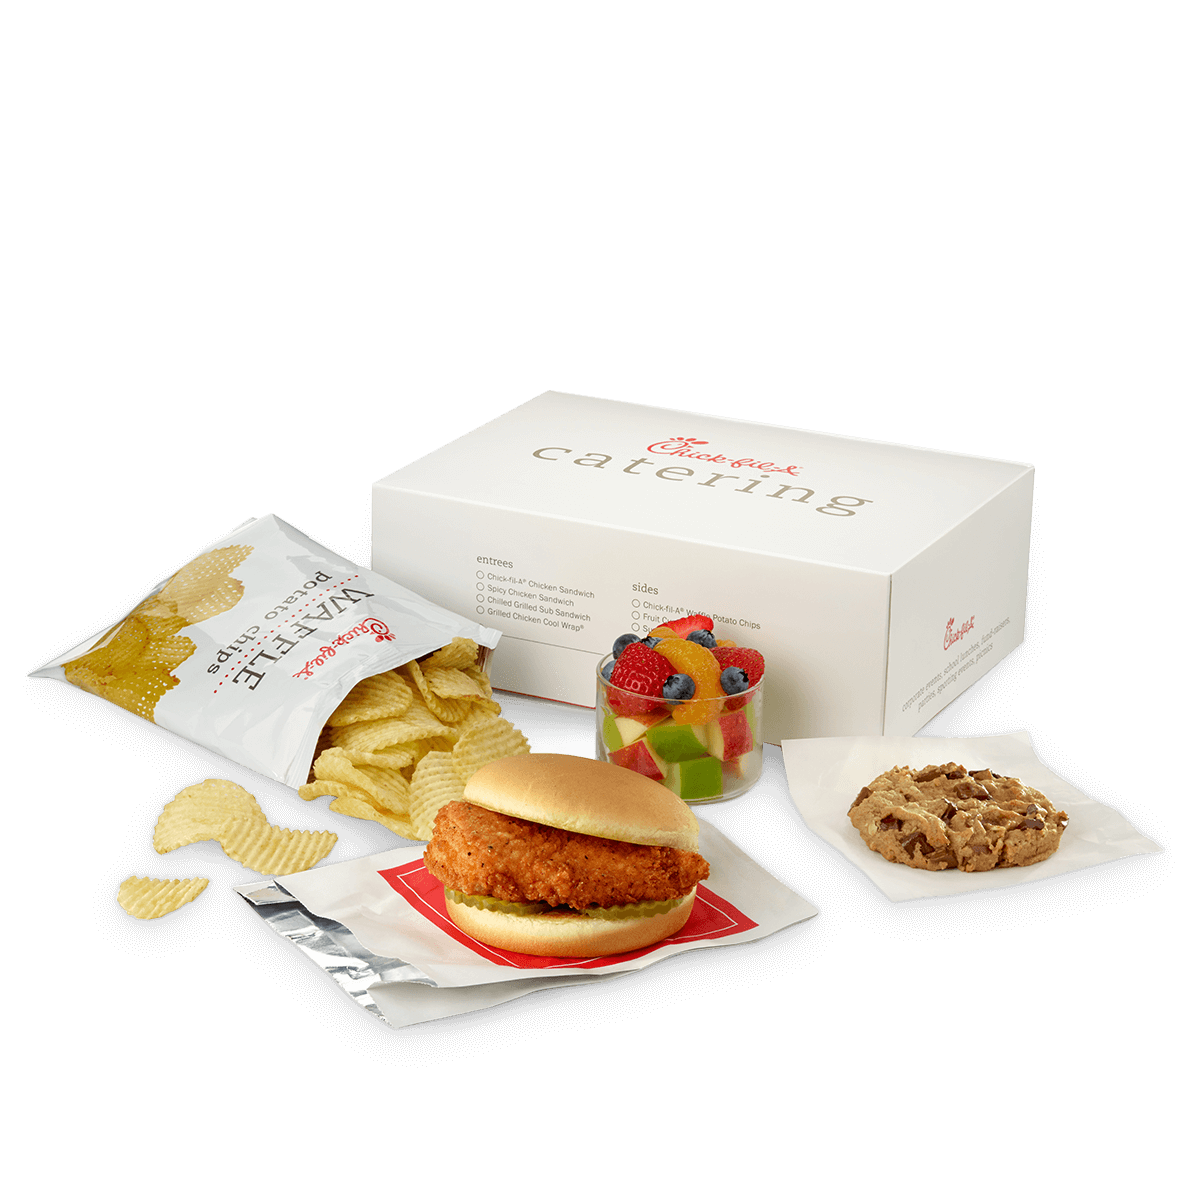 Packaged Meals. Chick fil A offers 4 of their signature menu items for purchase as a packaged meal for catering. You can choose between Chick fil A classic Chicken Sandwich, Spicy Chicken Sandwich, Grilled Chicken Cool Wrap, or Chicken Salad Sandwich.